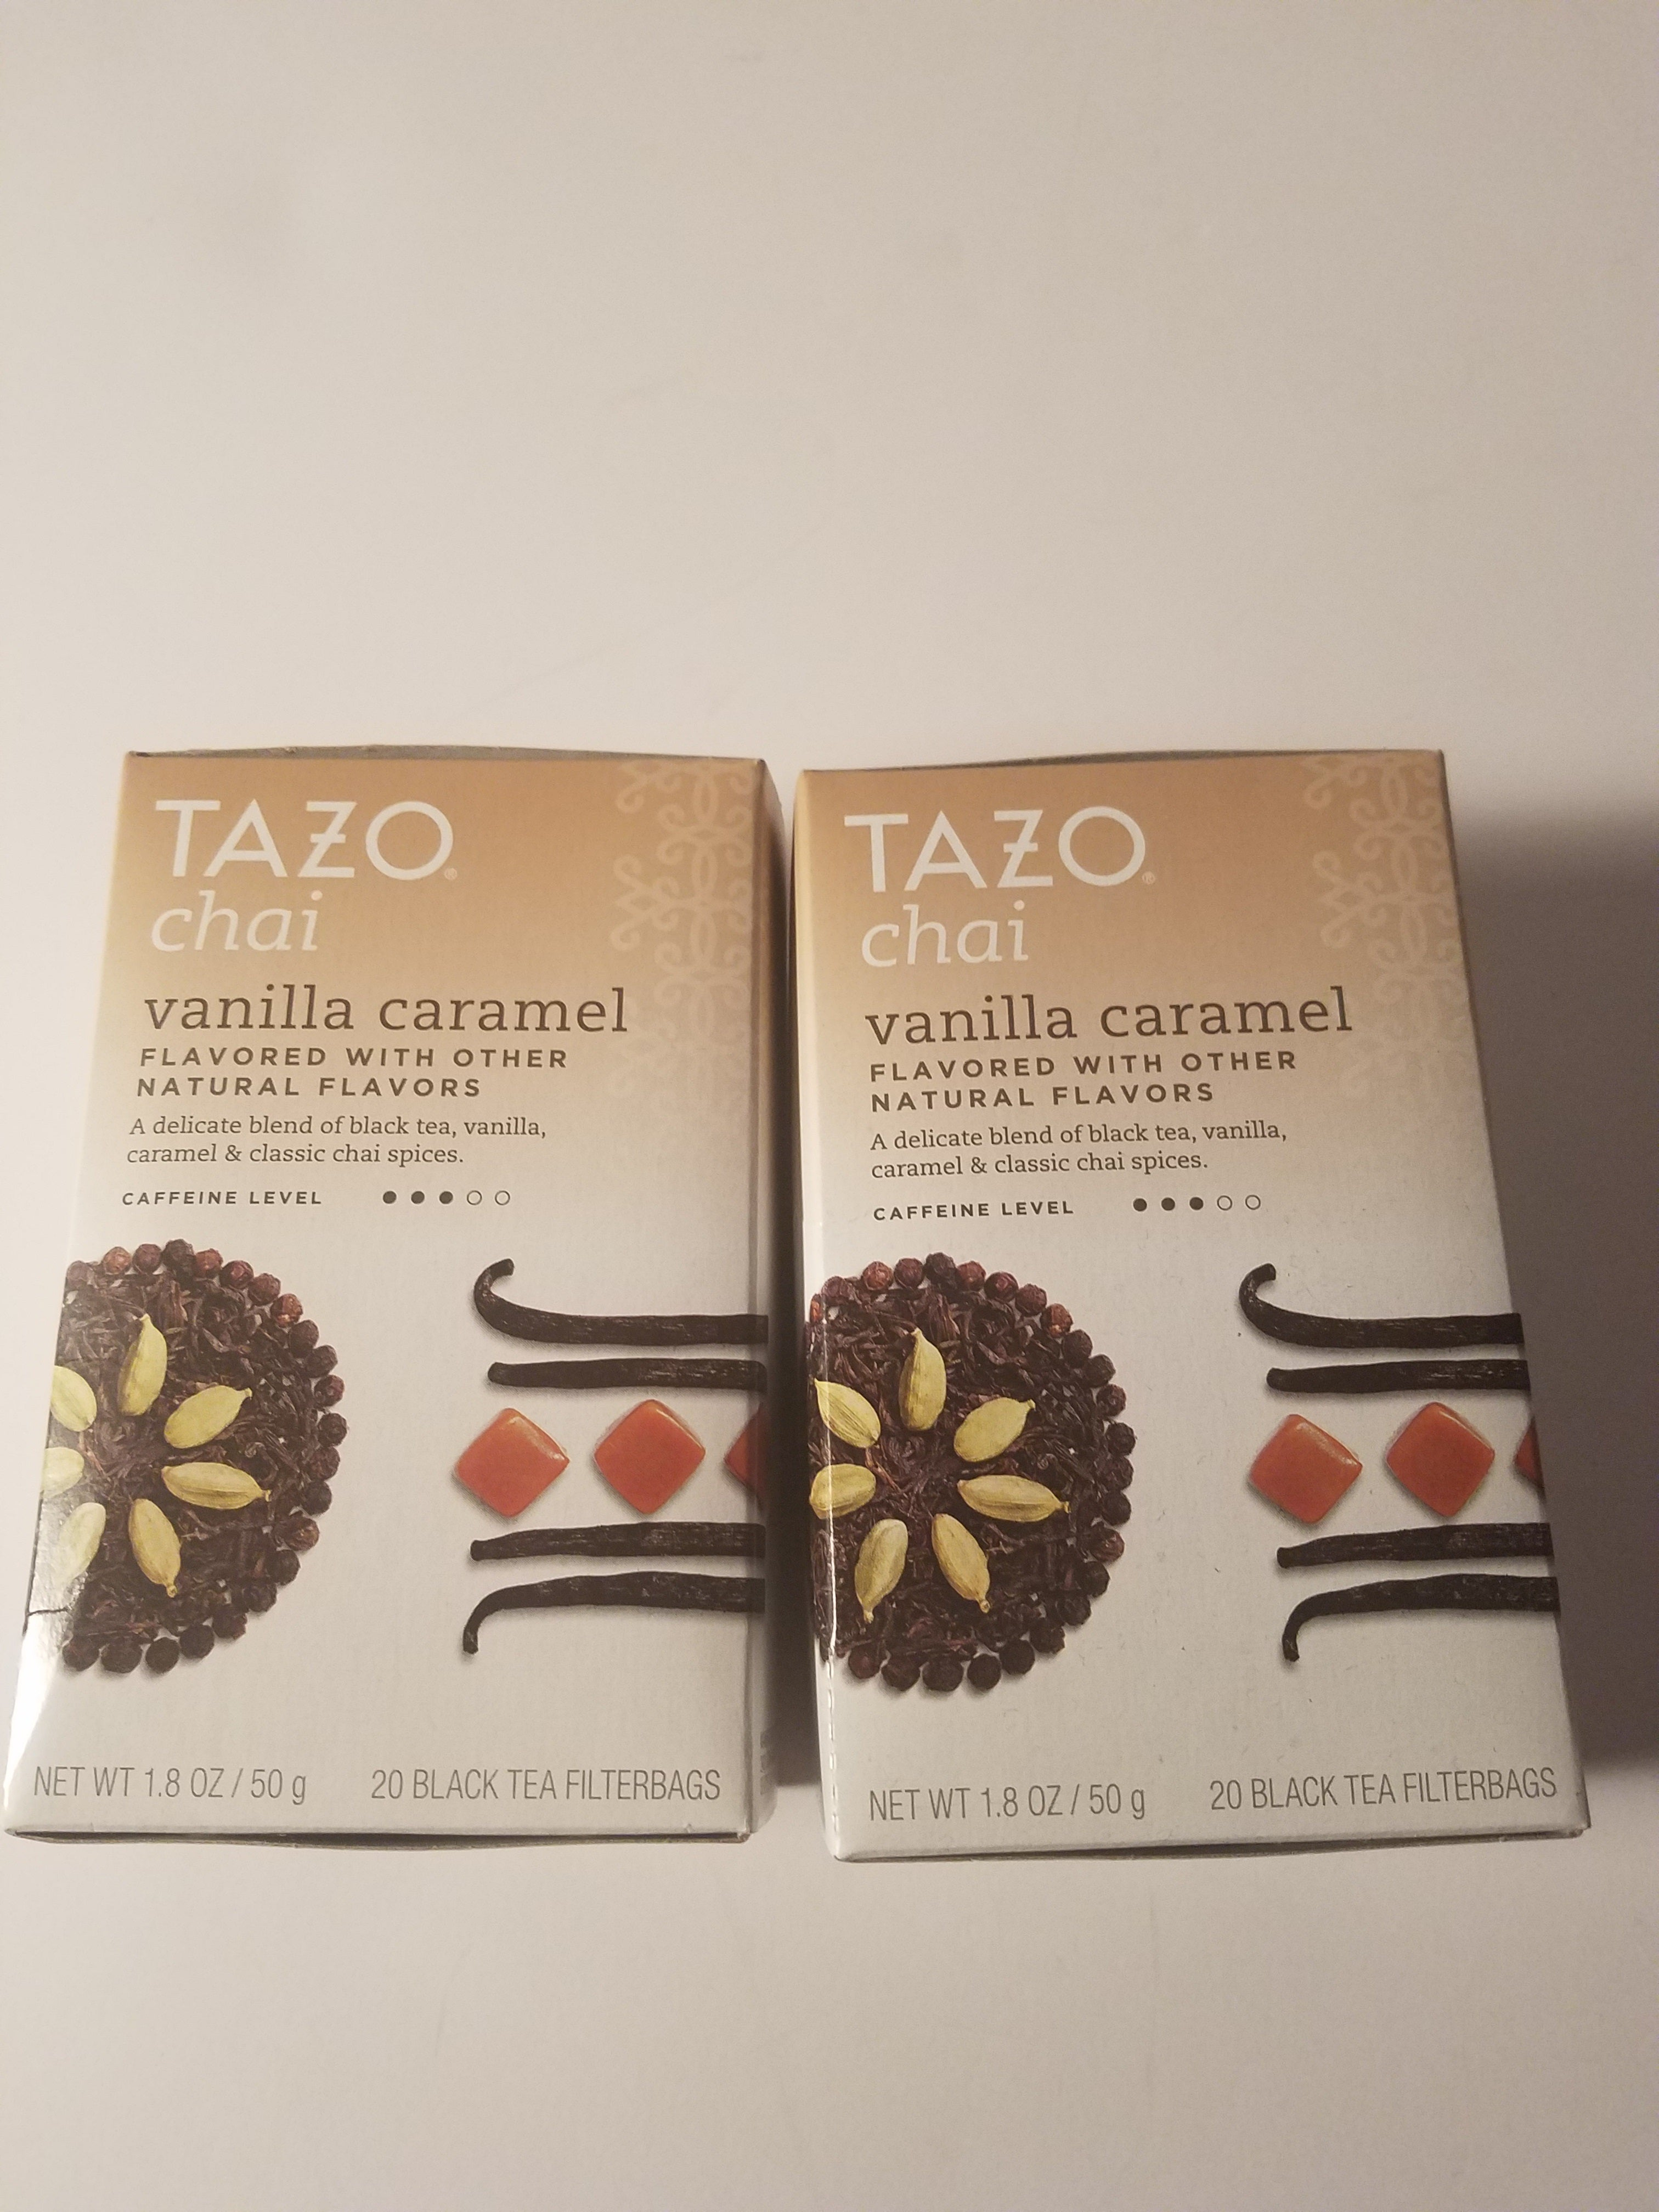 Tazo chai vanilla caramel black tea 20 filterbags lot of 2 boxes new in packages